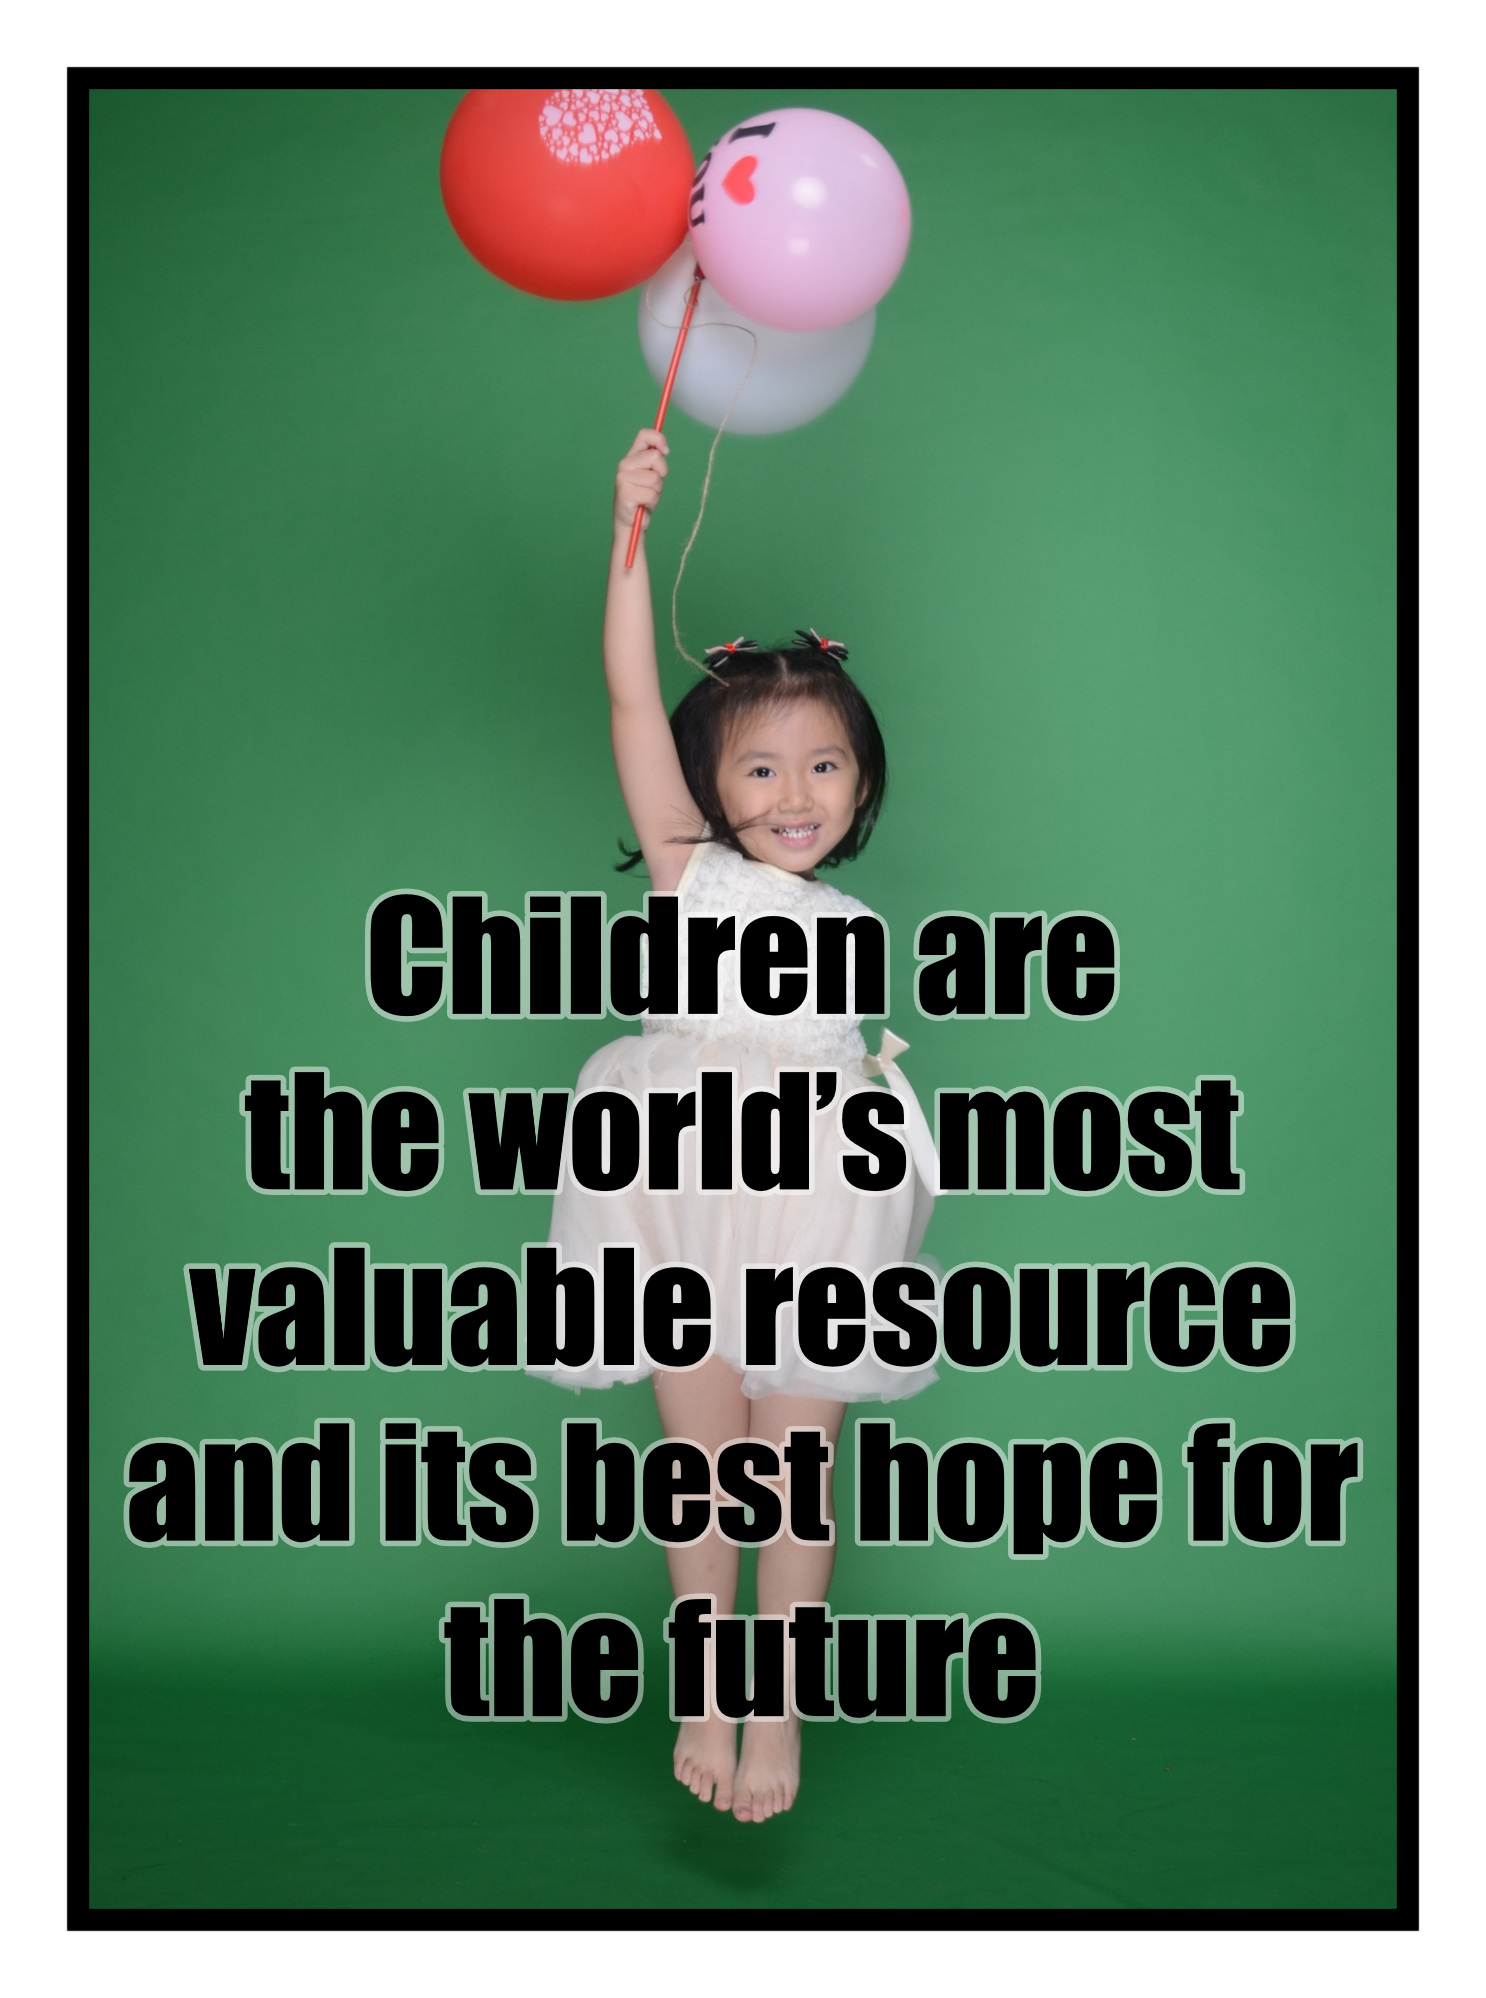 Quote Kennedy Children are the worlds most valuable recource and its best hope for the future